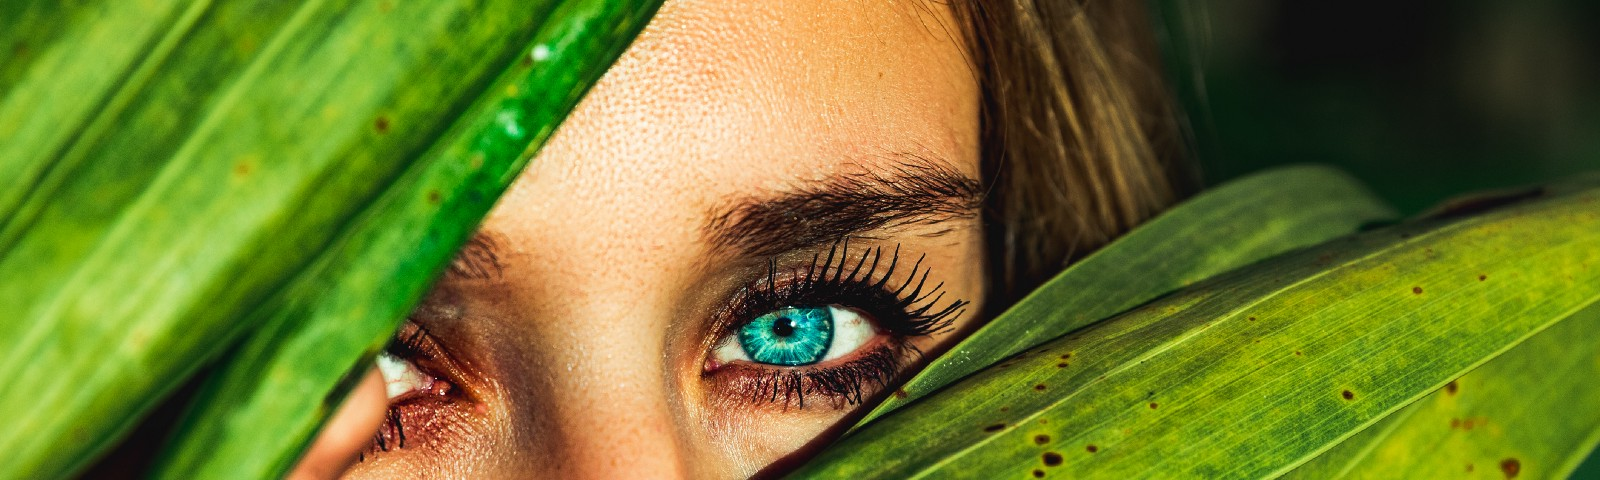 Brown-haired, green-eyed woman watching from behind a green-leafed bush, with only her eyes and eyebrows barely visible.